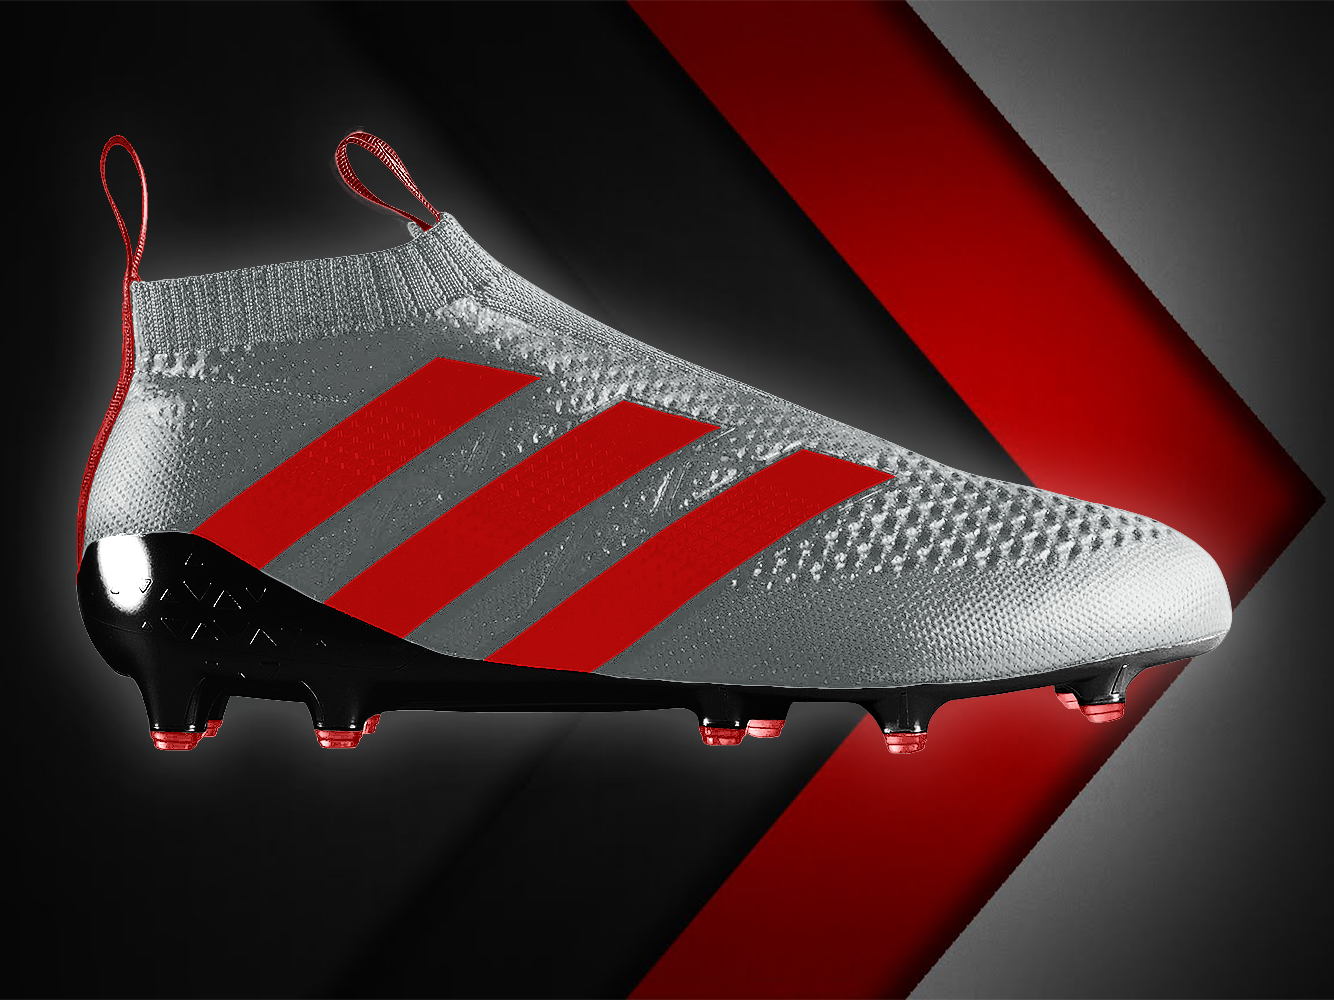 size 40 7fe0e 795d2 Adidas Ace 16+ Silver/Red/Black by Peter Farrelly on Dribbble